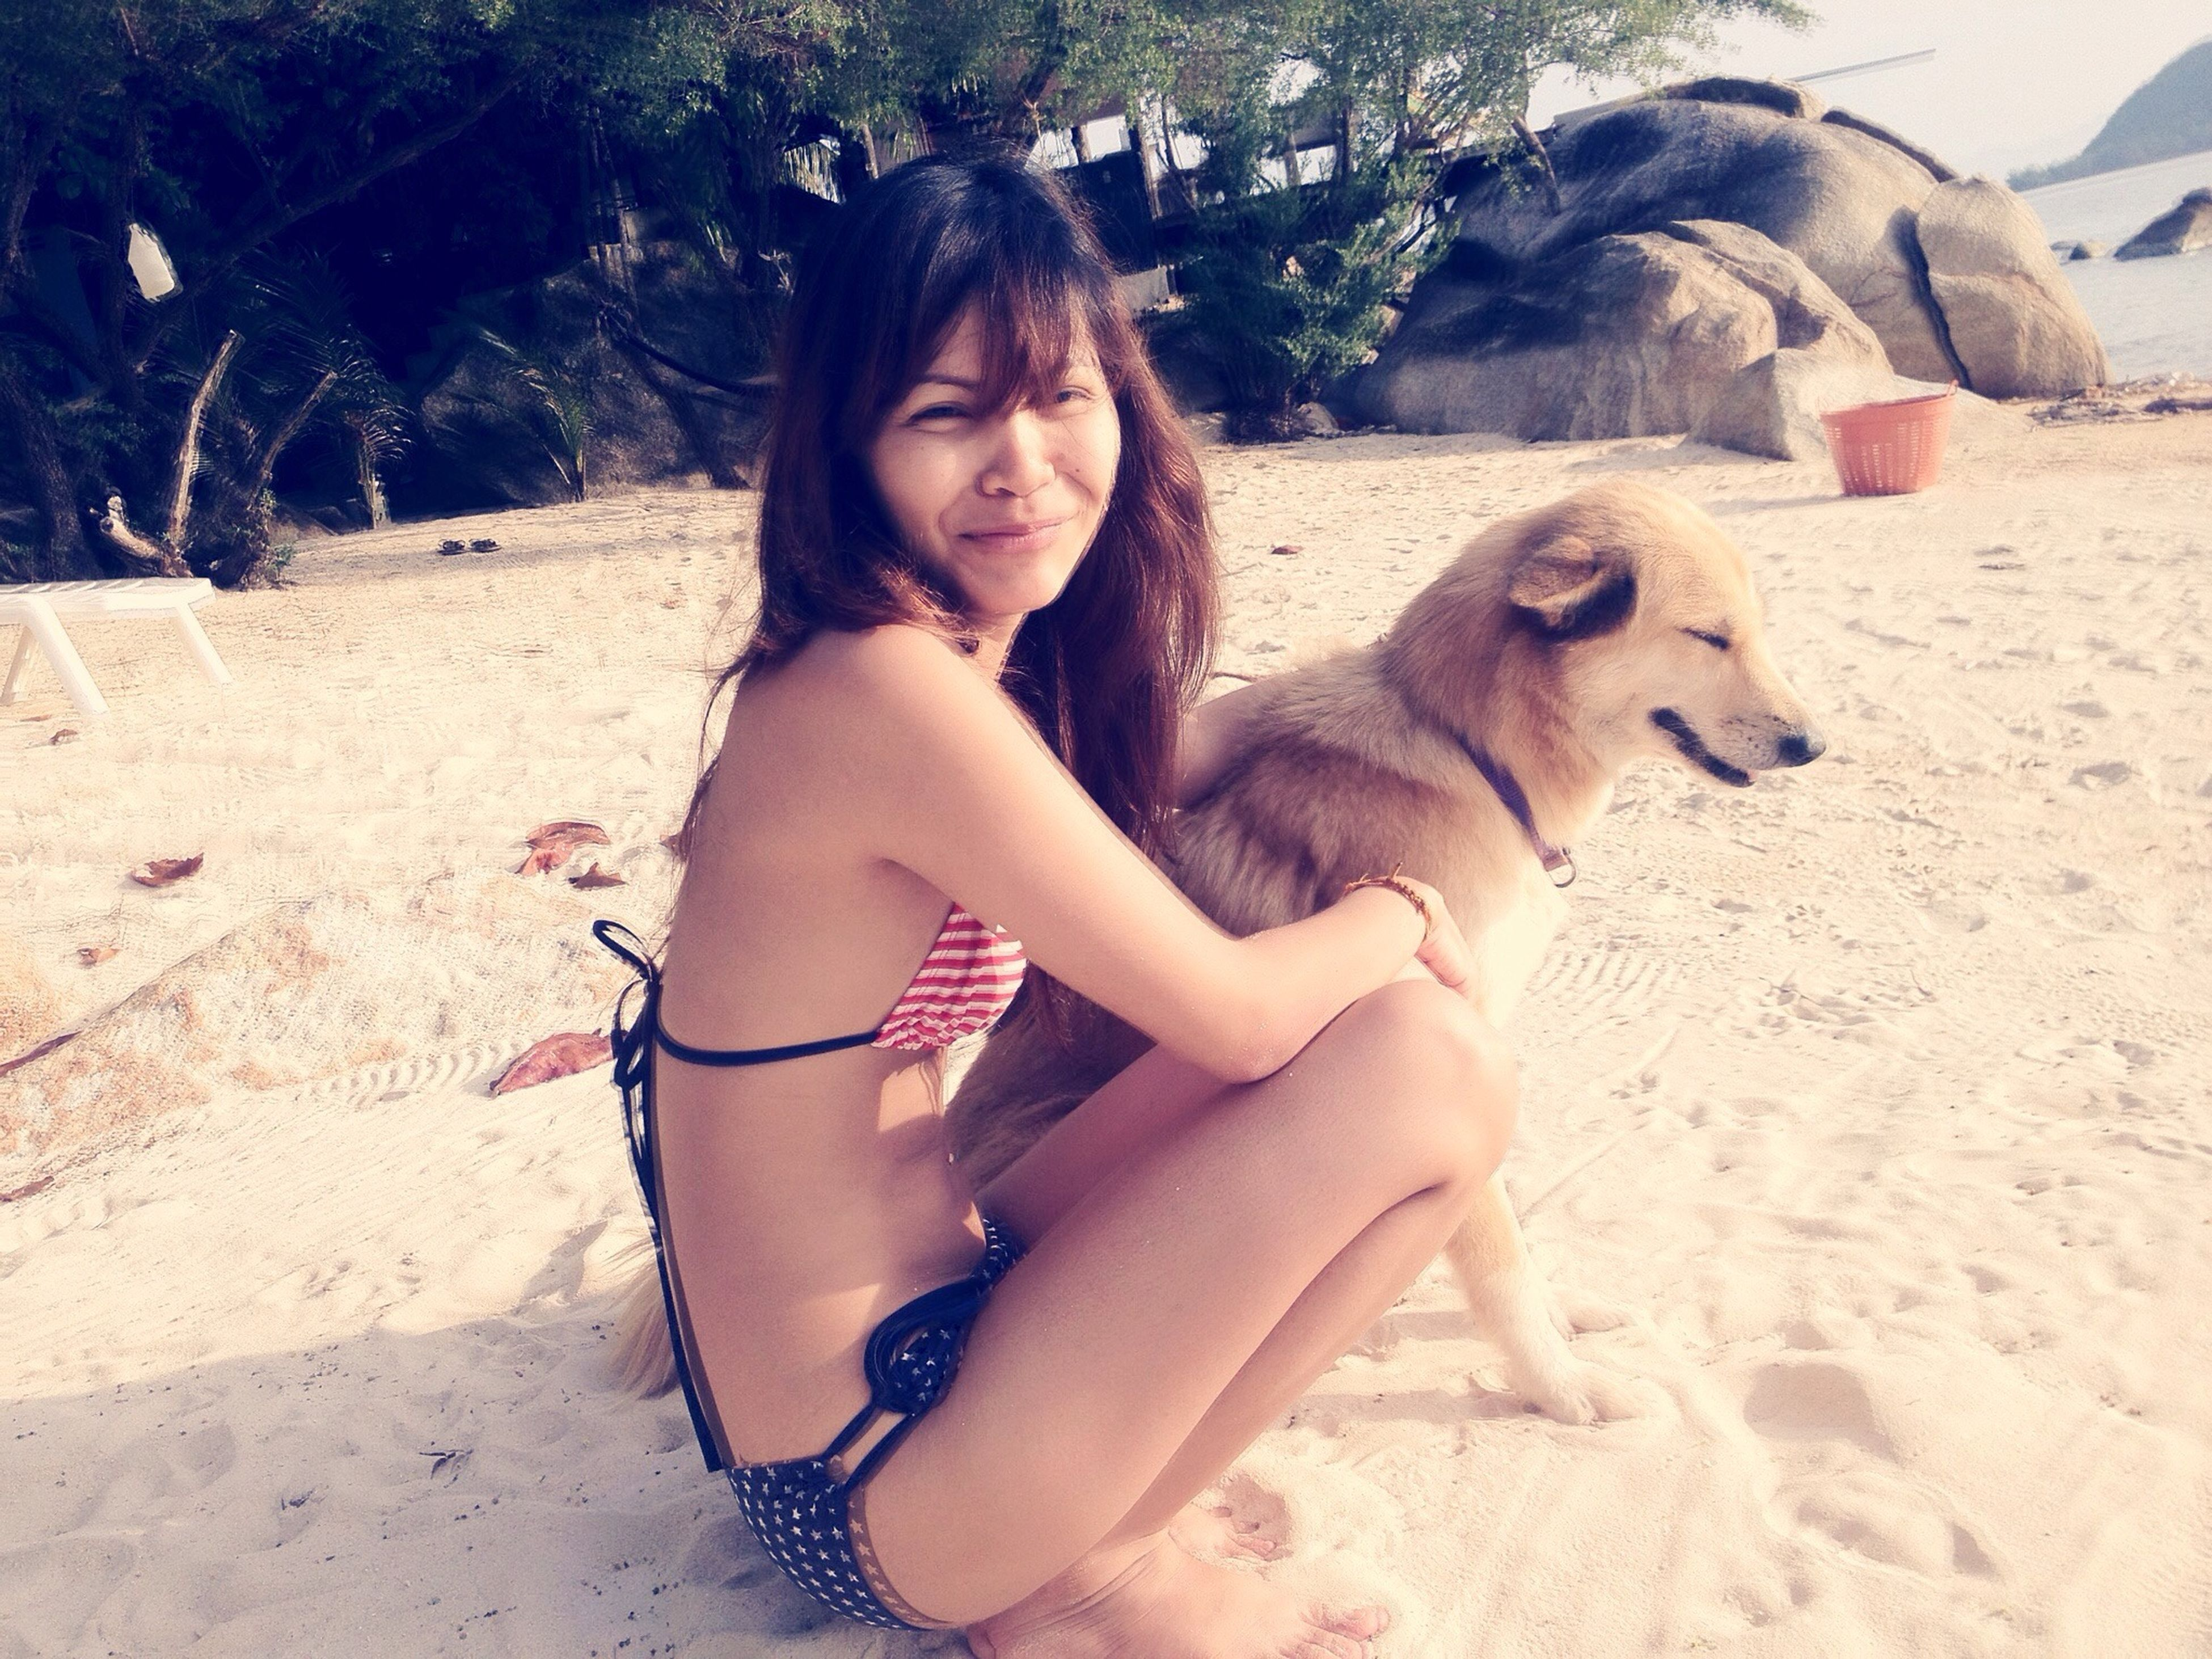 First time @Koh phangan2011, cute dog! Wanna go back there soon ?